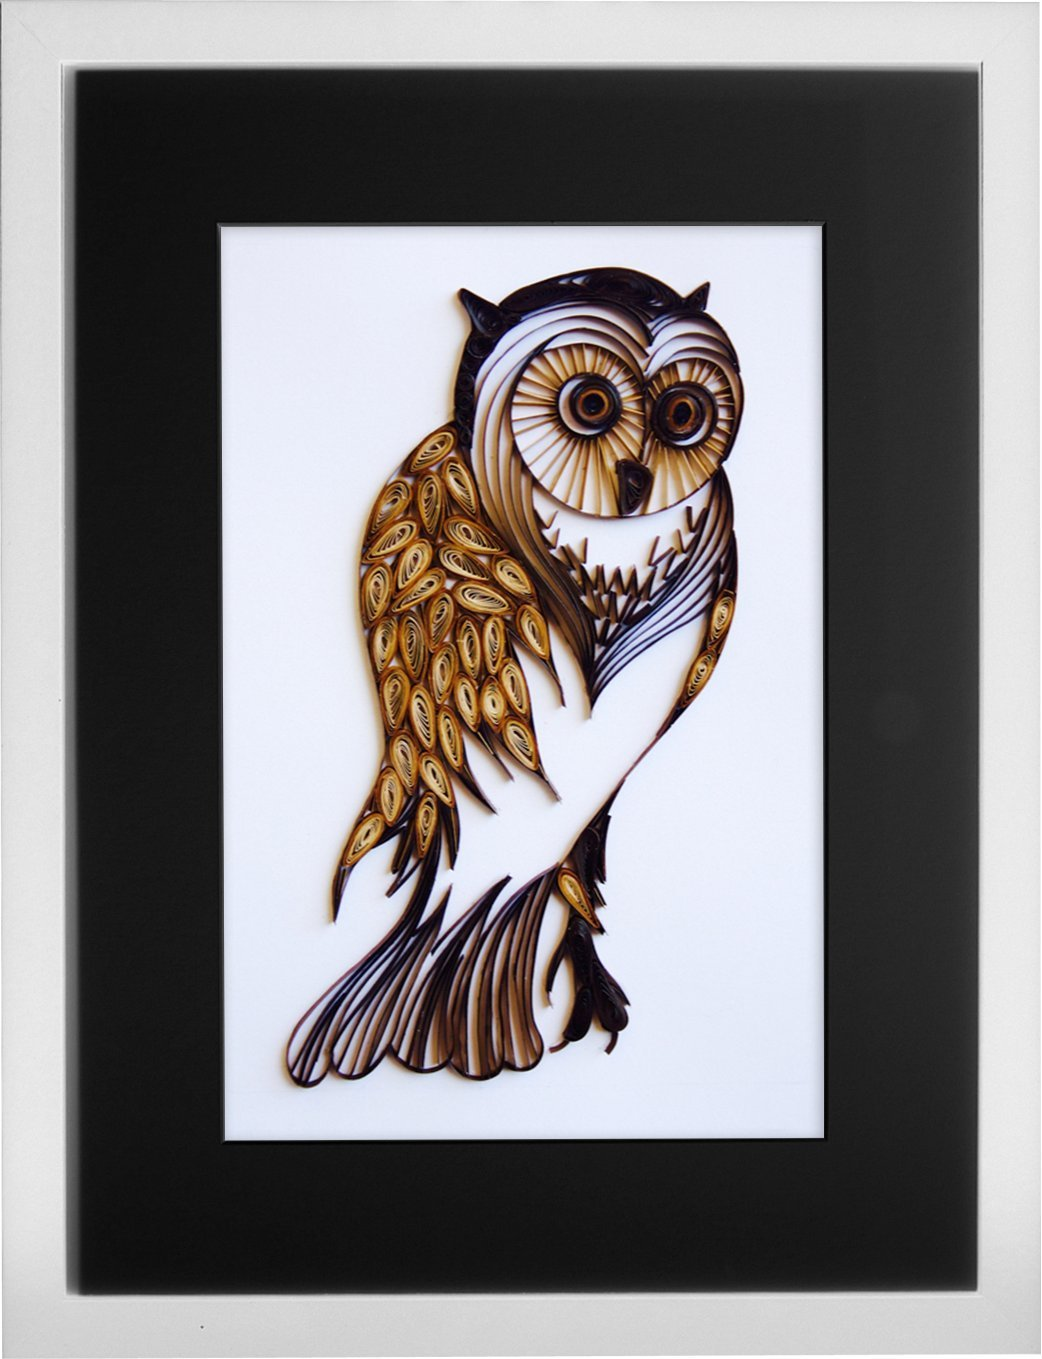 The Vintage Wise Owl - Modern Paper Quilled Wall Art for Home Decor (one of a kind paper quilling handcrafted piece made with love by an artist in California)